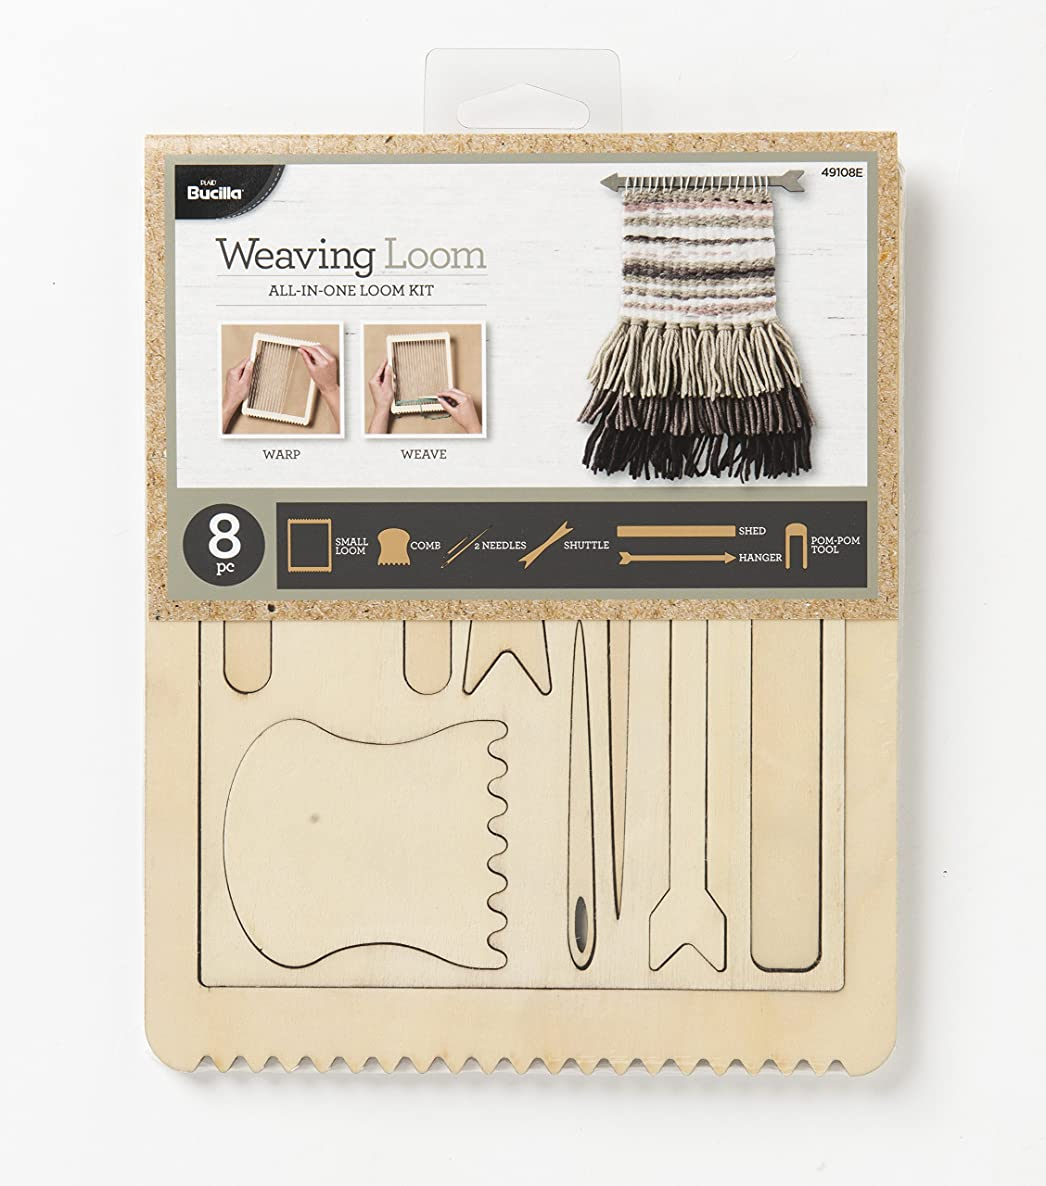 Bucilla 49108 Weaving Loom Kit, 8 pc, Rectangle All-in-One